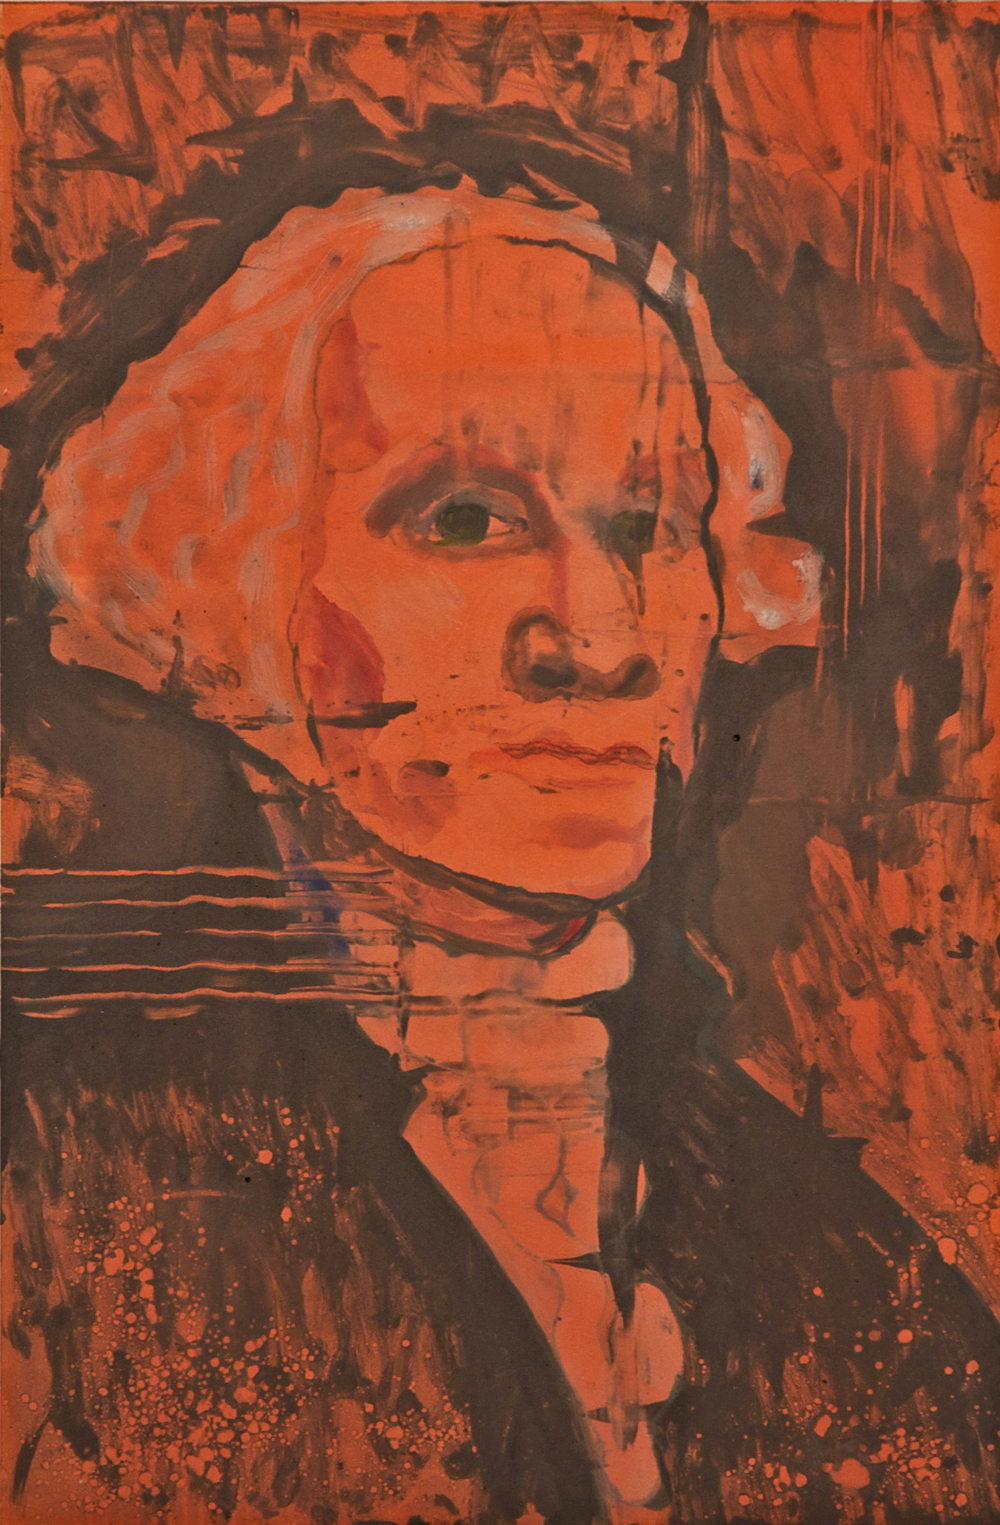 George Washington, 2007 monotype on paper, 30 x 22 inches